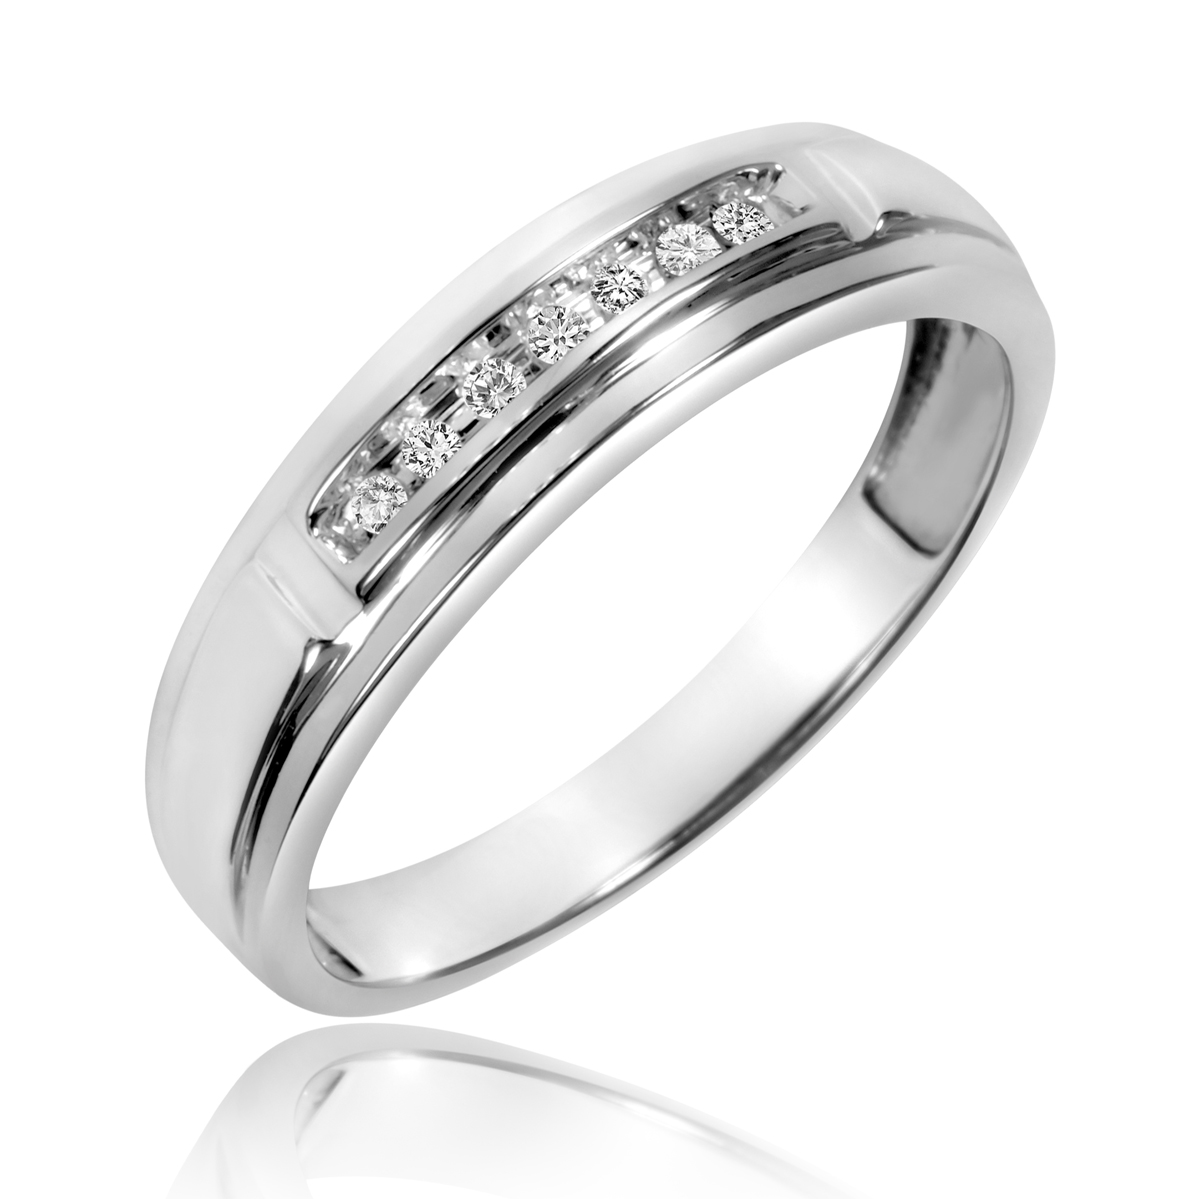 1 1 15 carat t w diamond men s wedding band 10k white for Men s 1 carat diamond wedding bands